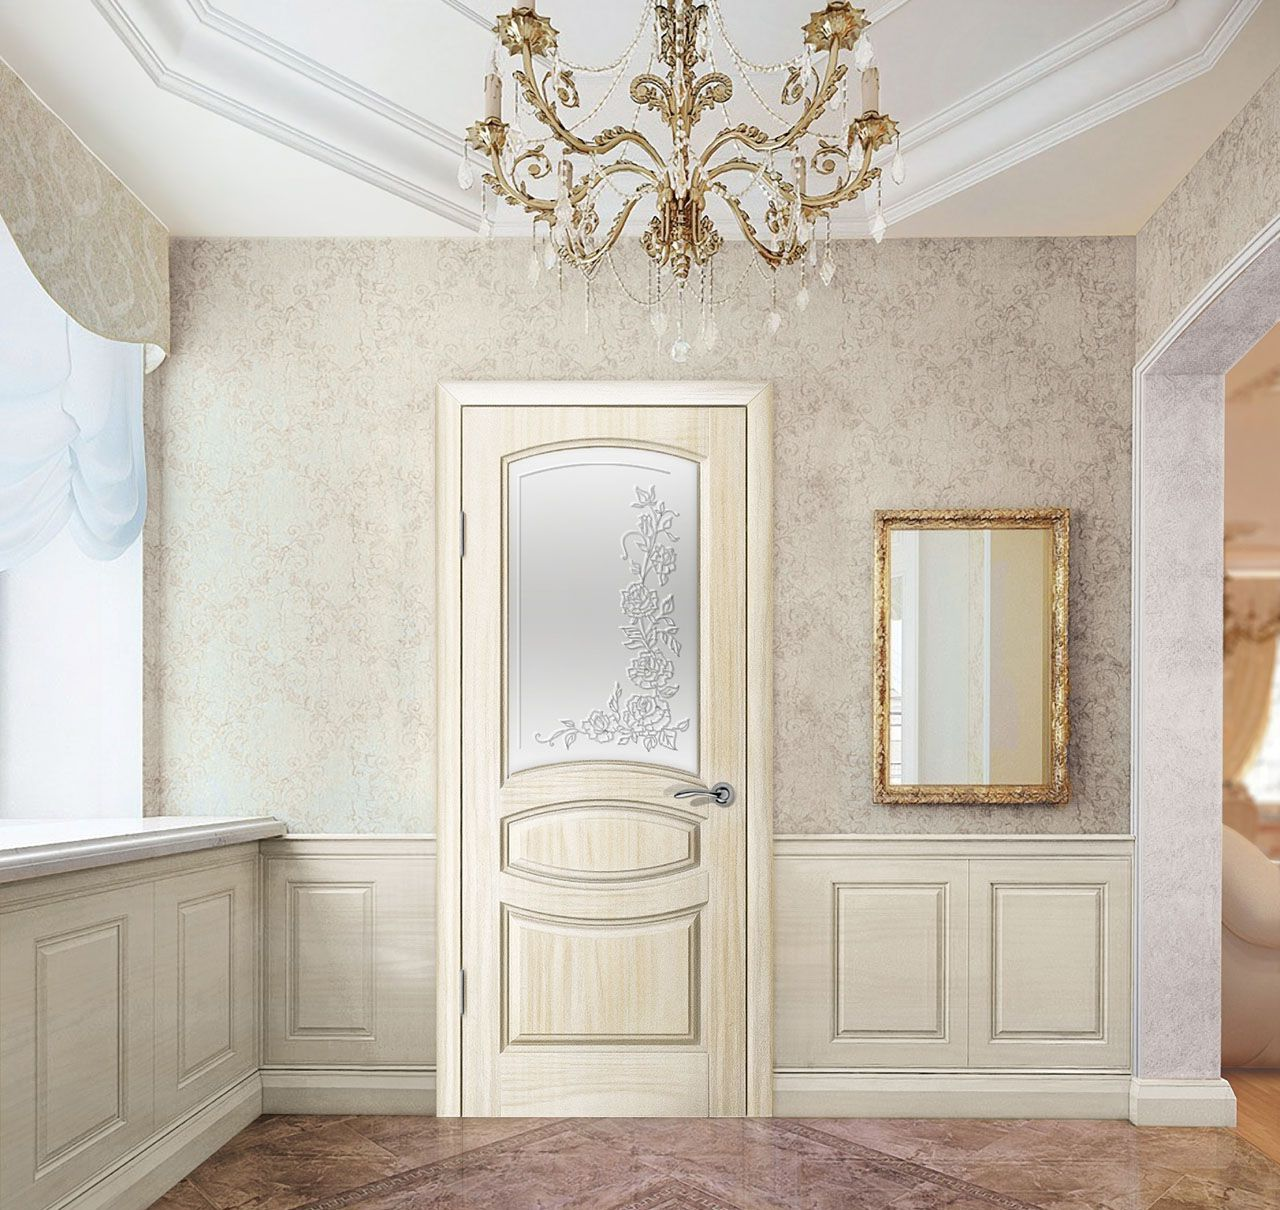 Classic Door Design palazzo peterhof 7015qqint casing with cyma louvre lacquered shaded blue with gold Interior Design In Bright Colors With Classic Wood Door With Glass Fusing